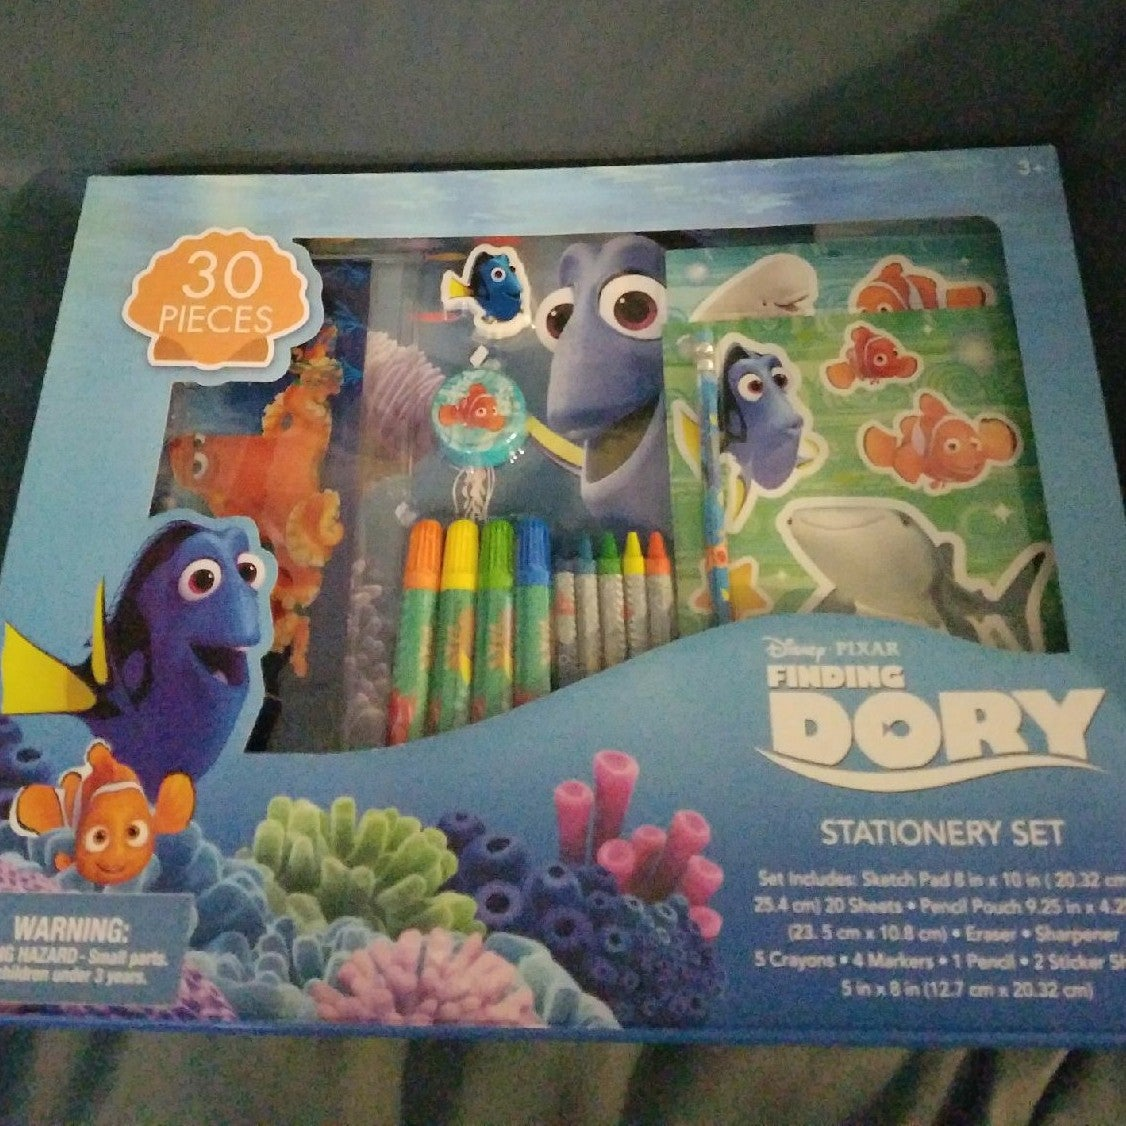 Finding Dory 30 Piece stationary set